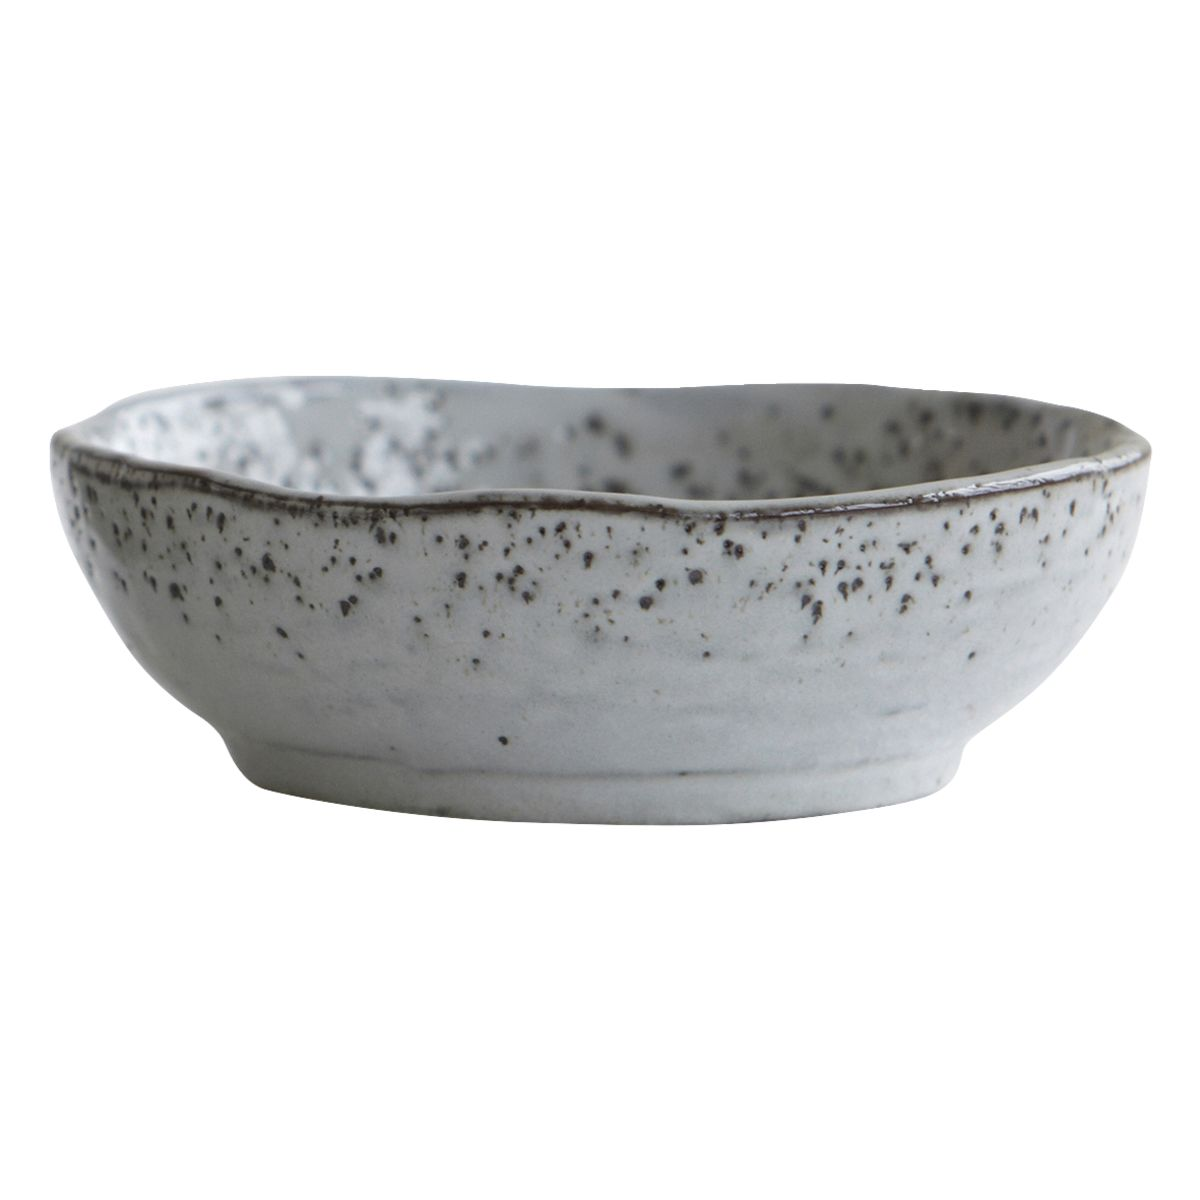 House Doctor Rustic Bowl hc0811